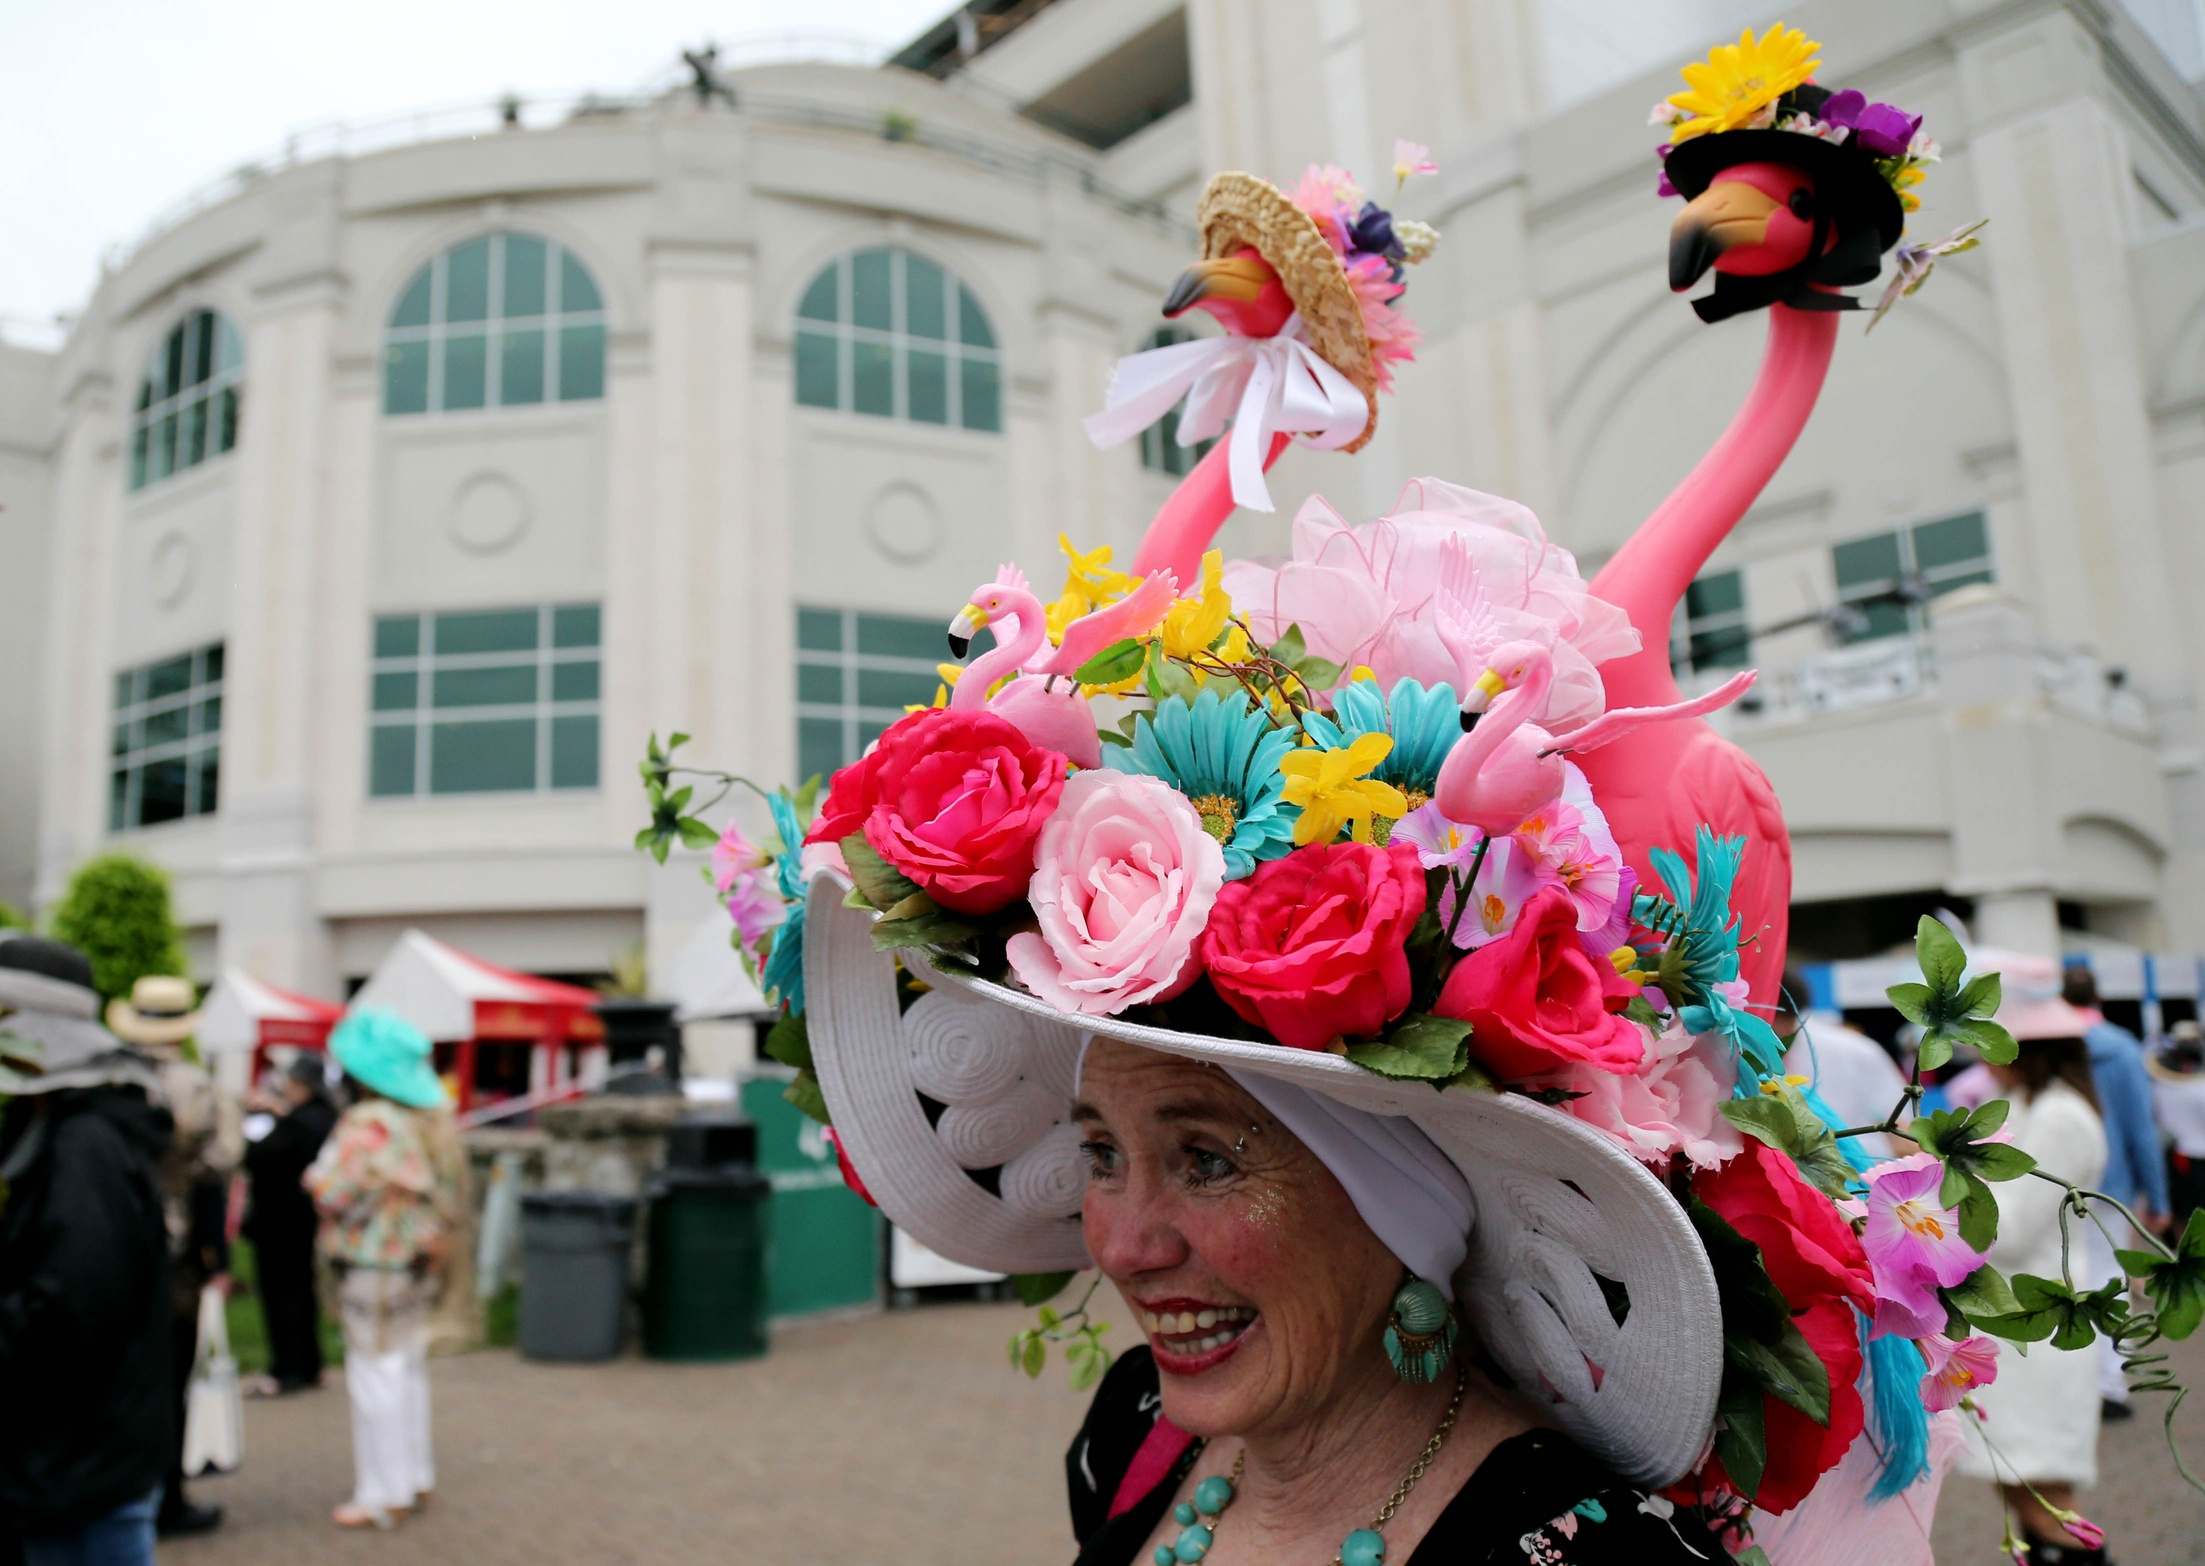 fda671478d5 Flower garden flamingos  Making Kentucky Derby hats and gardens tackier  since someone thought that they